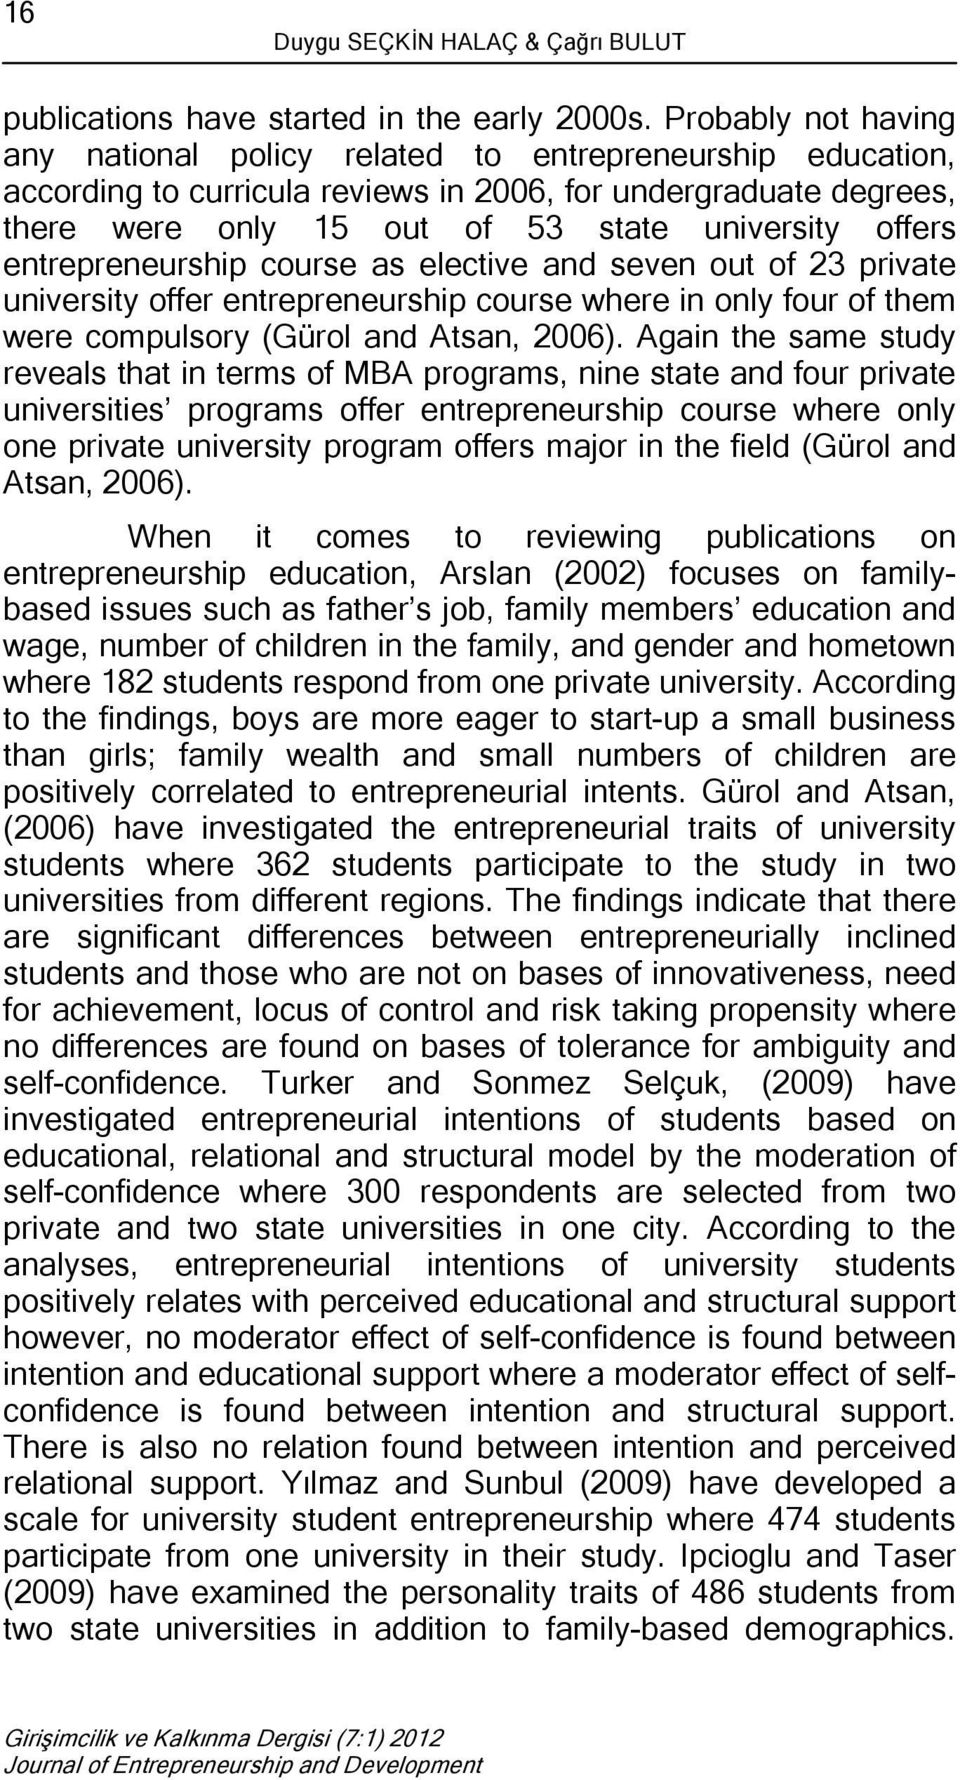 entrepreneurship course as elective and seven out of 23 private university offer entrepreneurship course where in only four of them were compulsory (Gürol and Atsan, 2006).